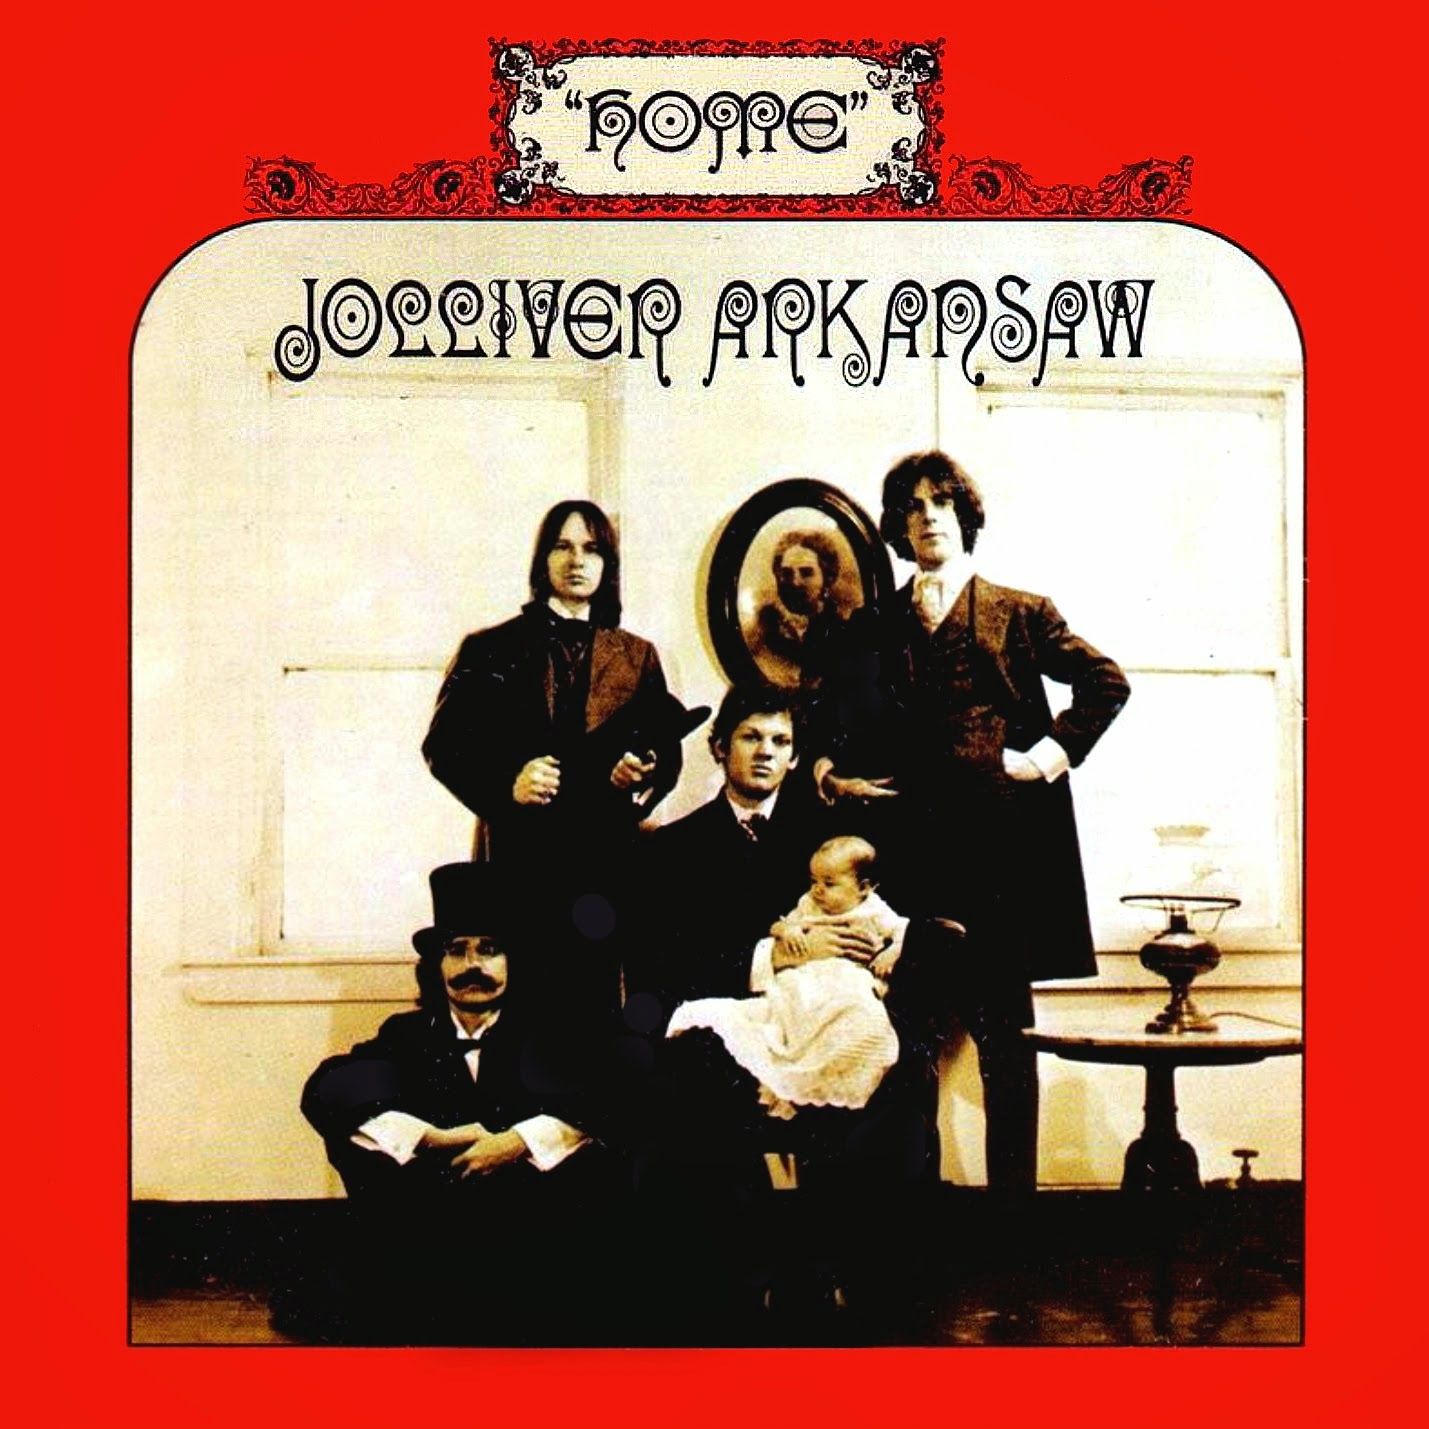 Jolliver Arkansaw - 'Home' LP